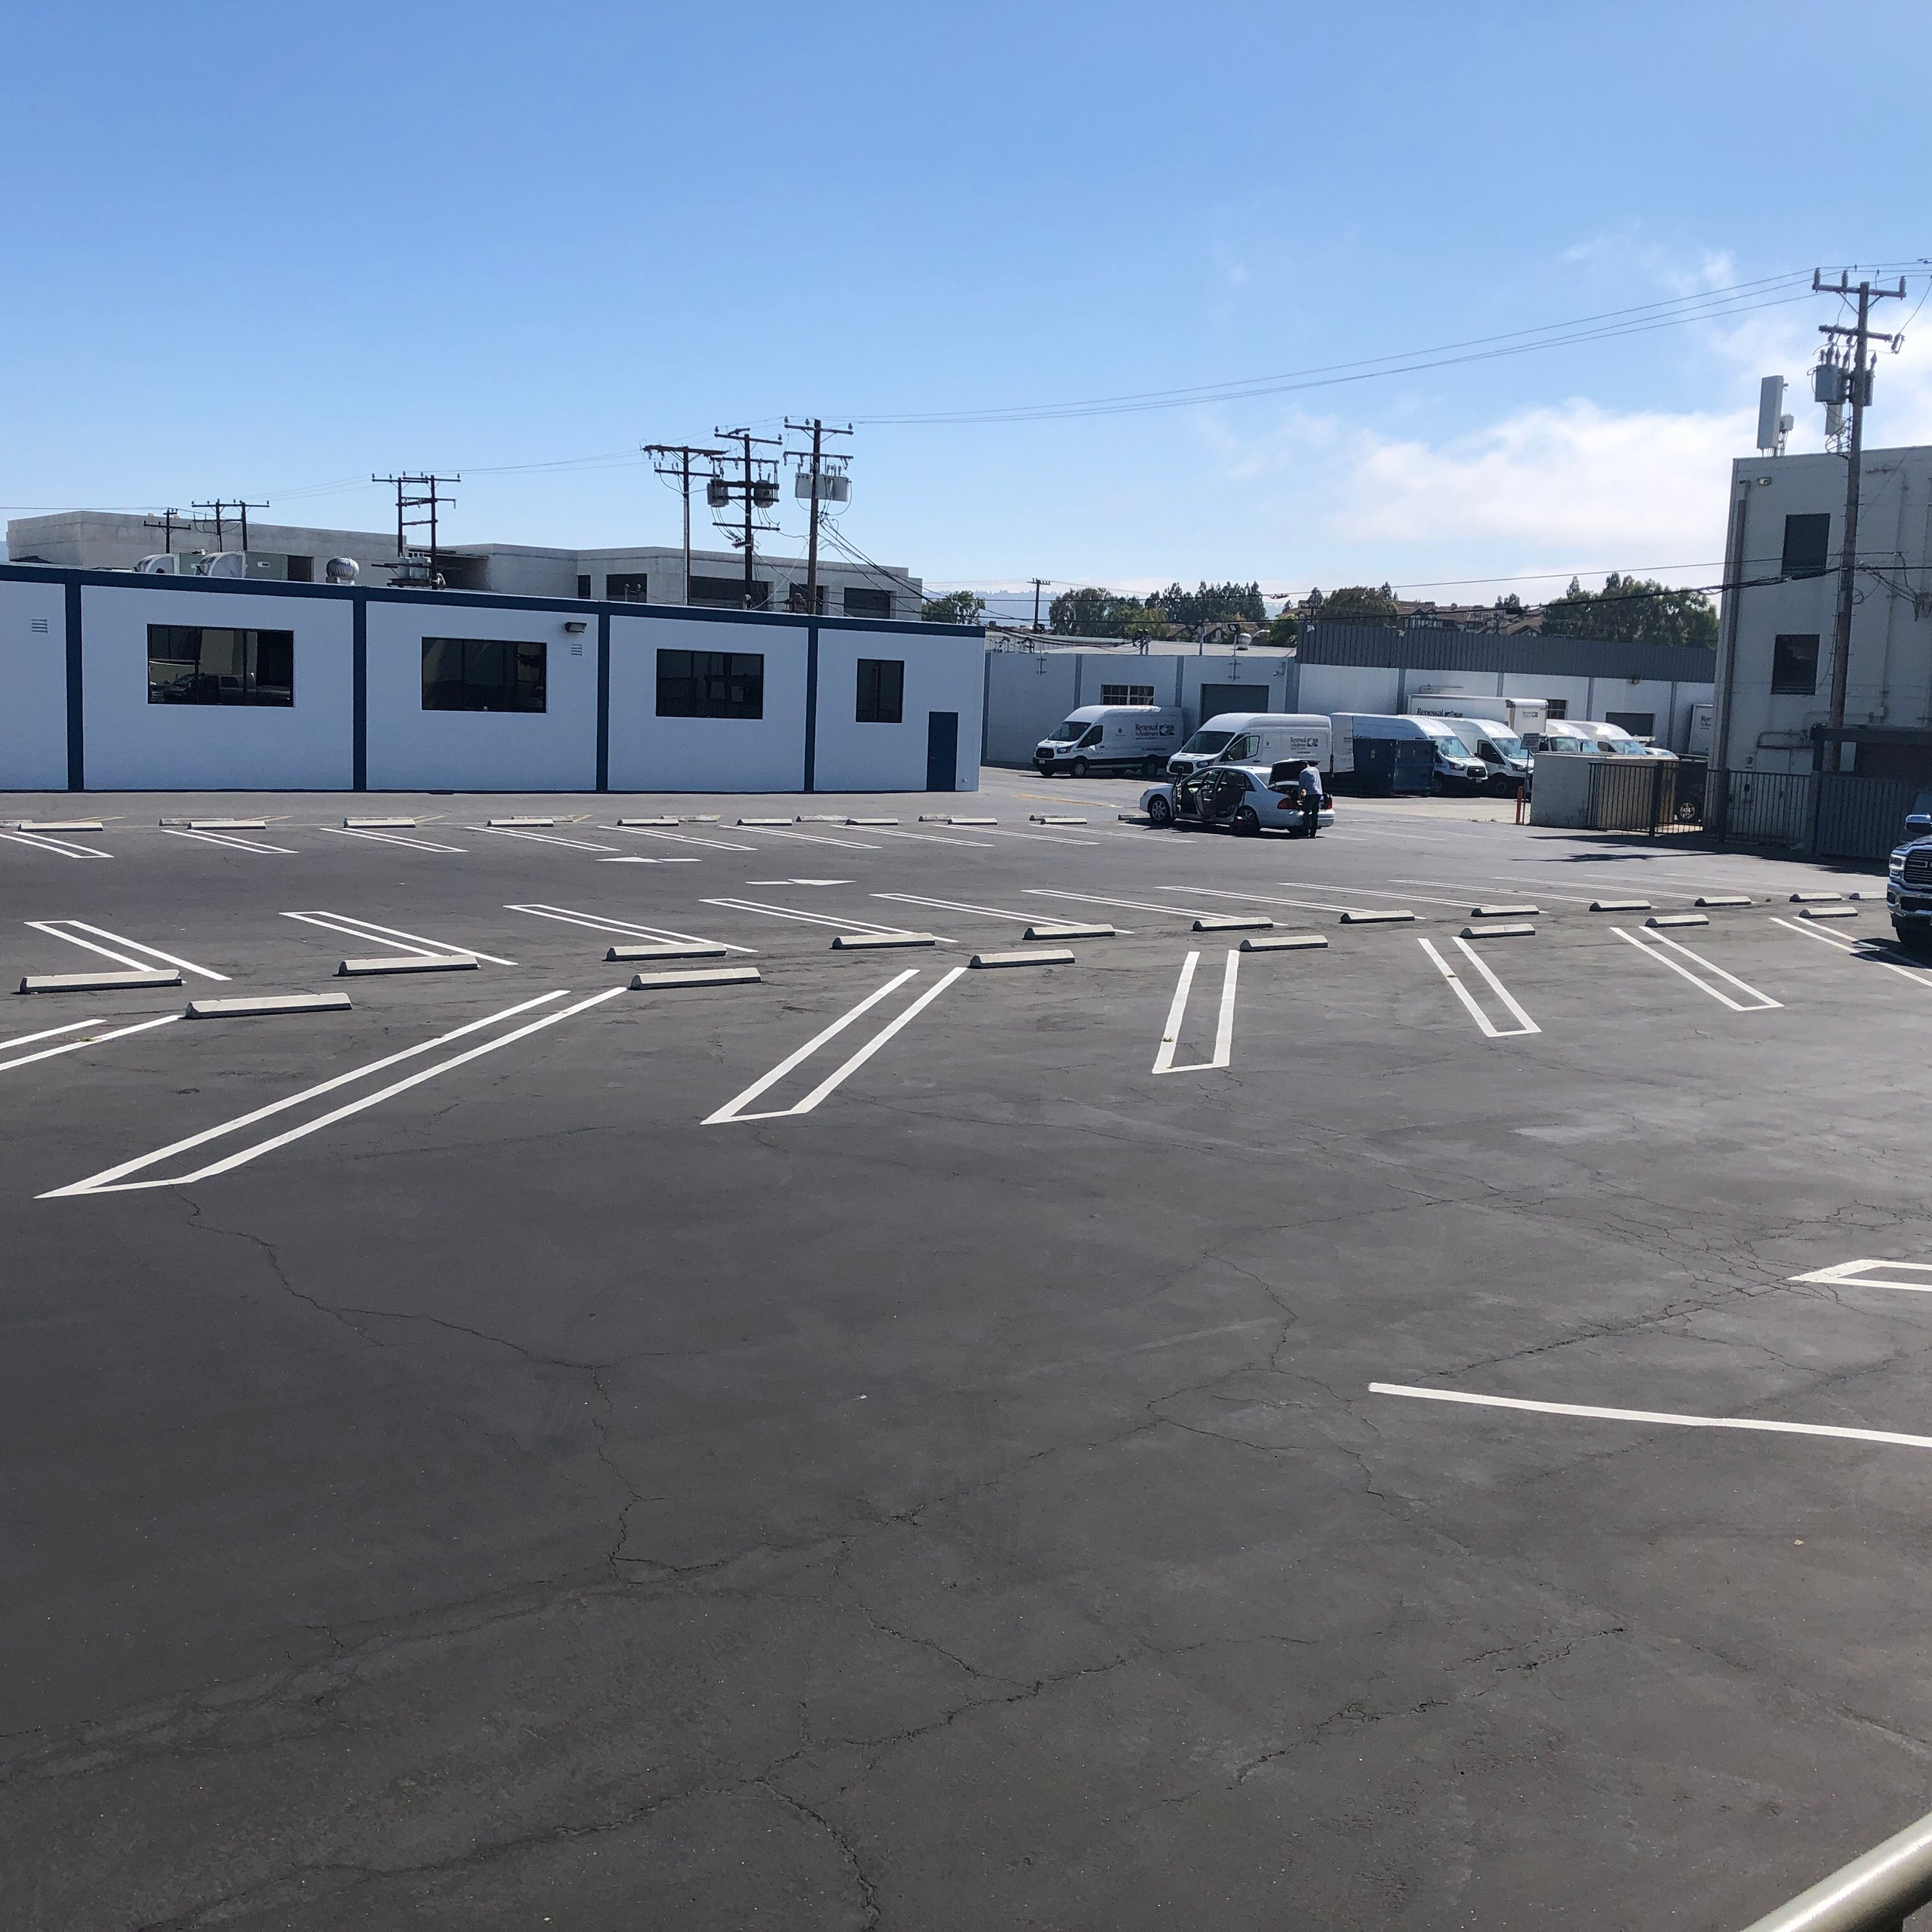 20x9 Parking Lot self storage unit